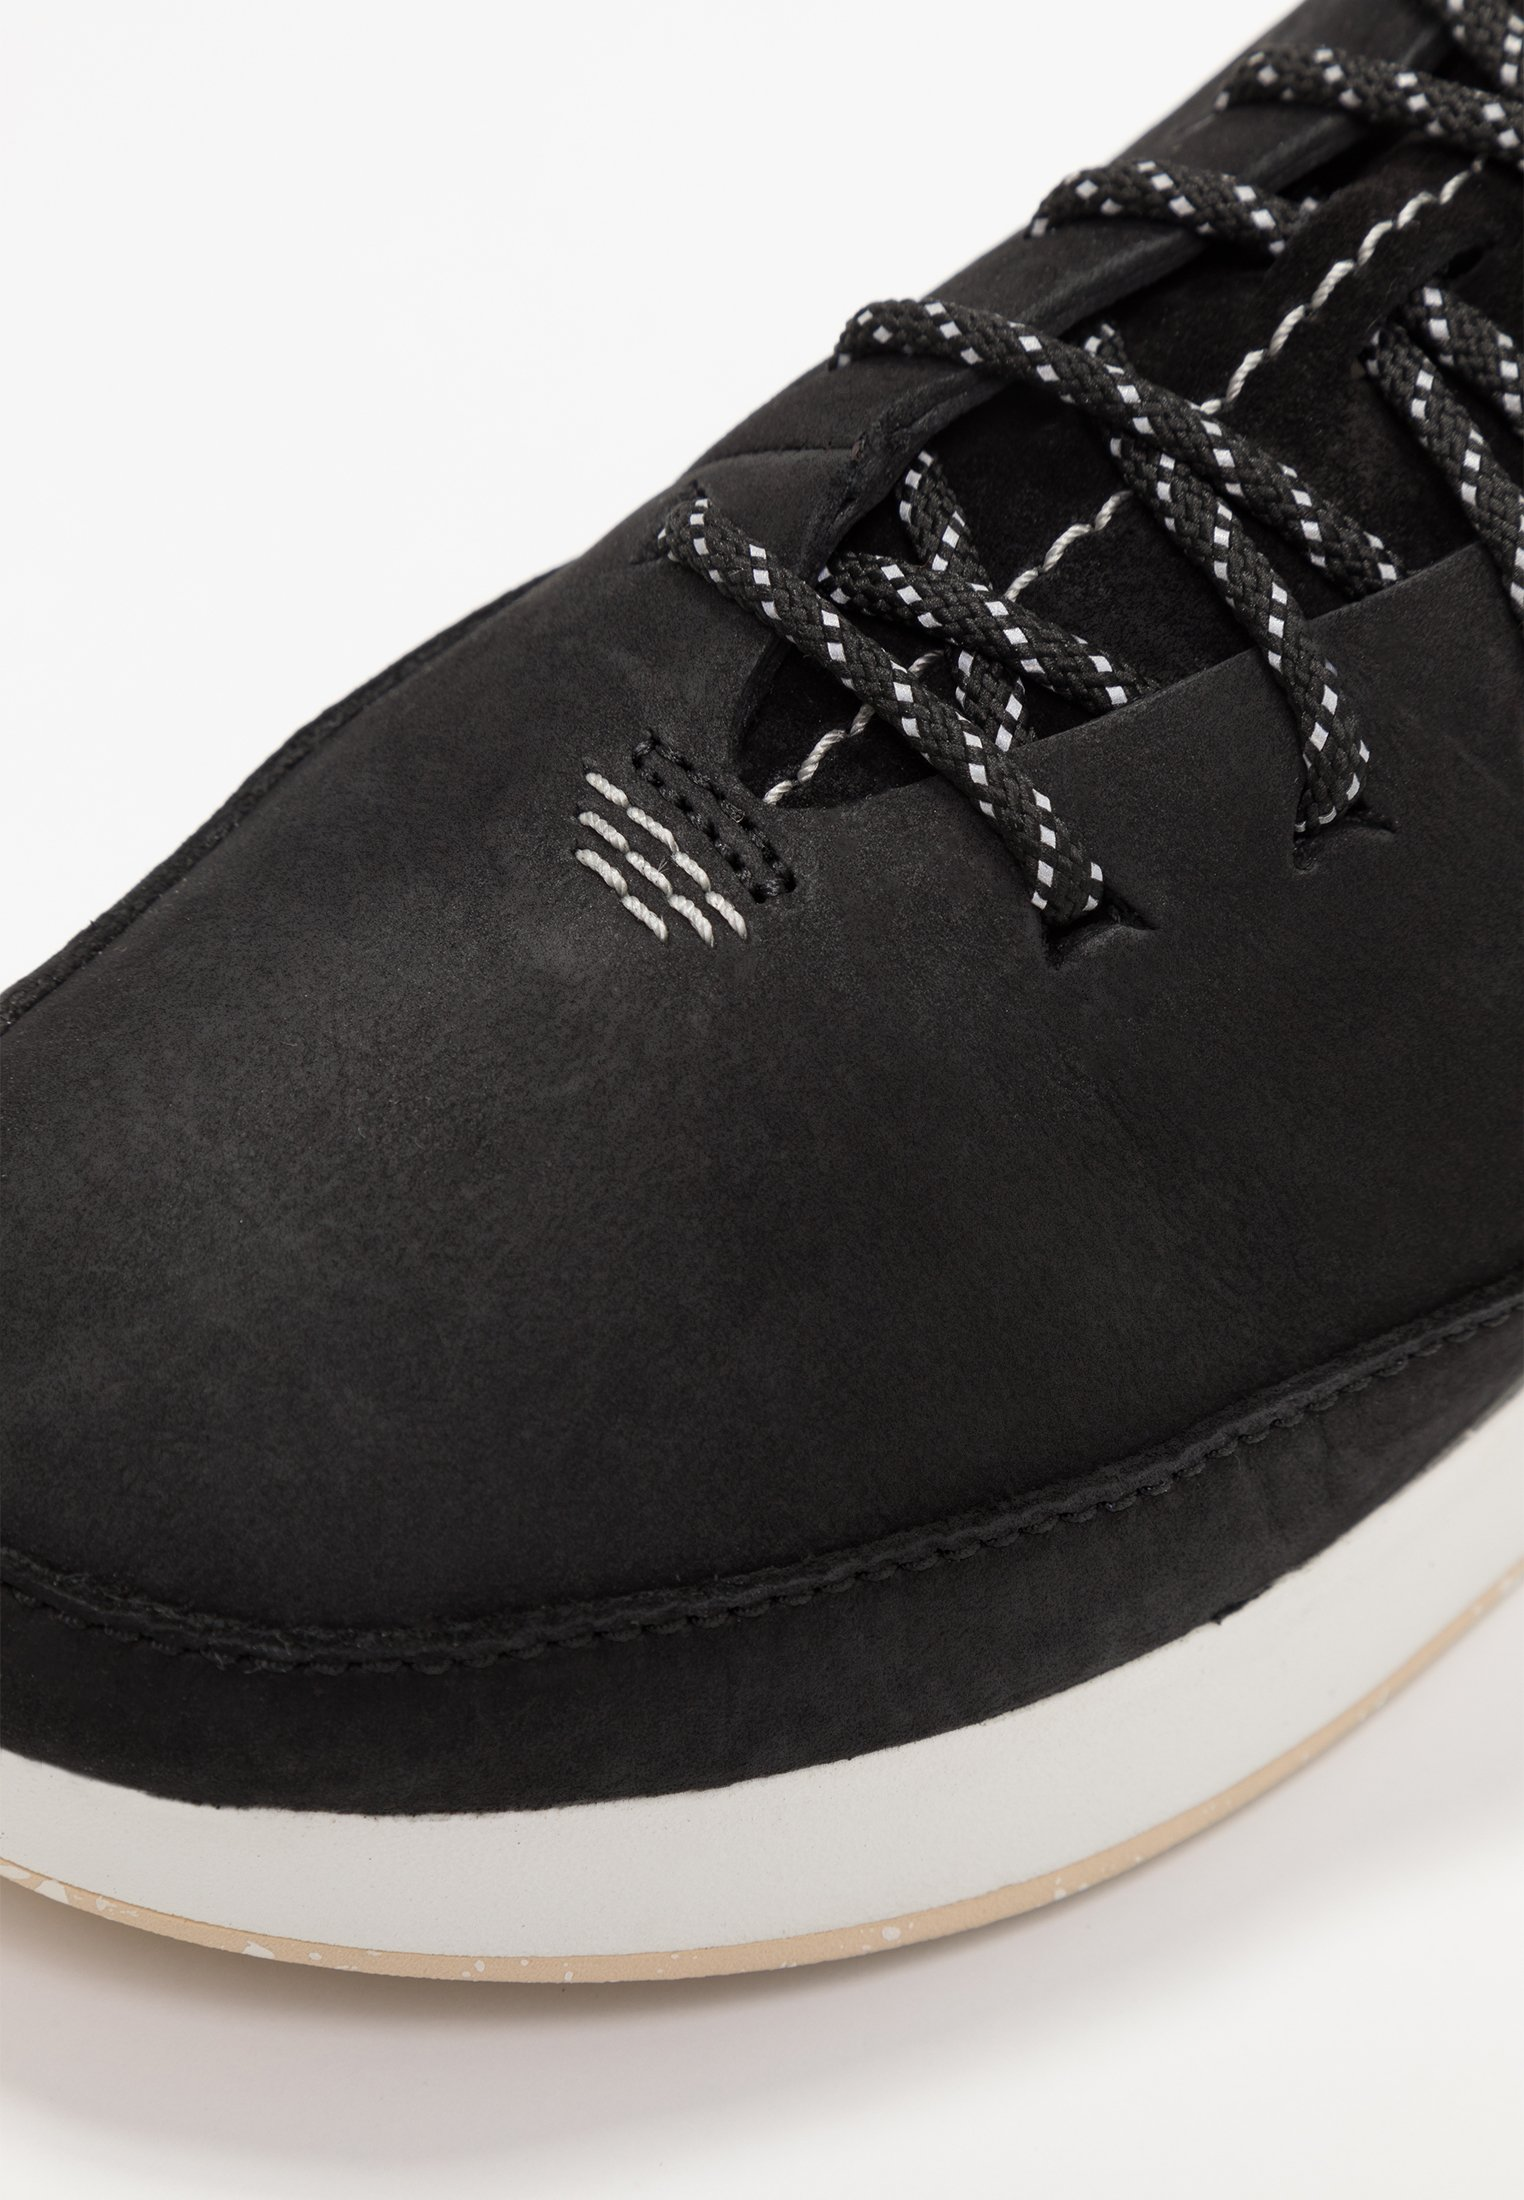 Basses Kiowa Clarks Black SportBaskets Originals 4q3AL5Rj